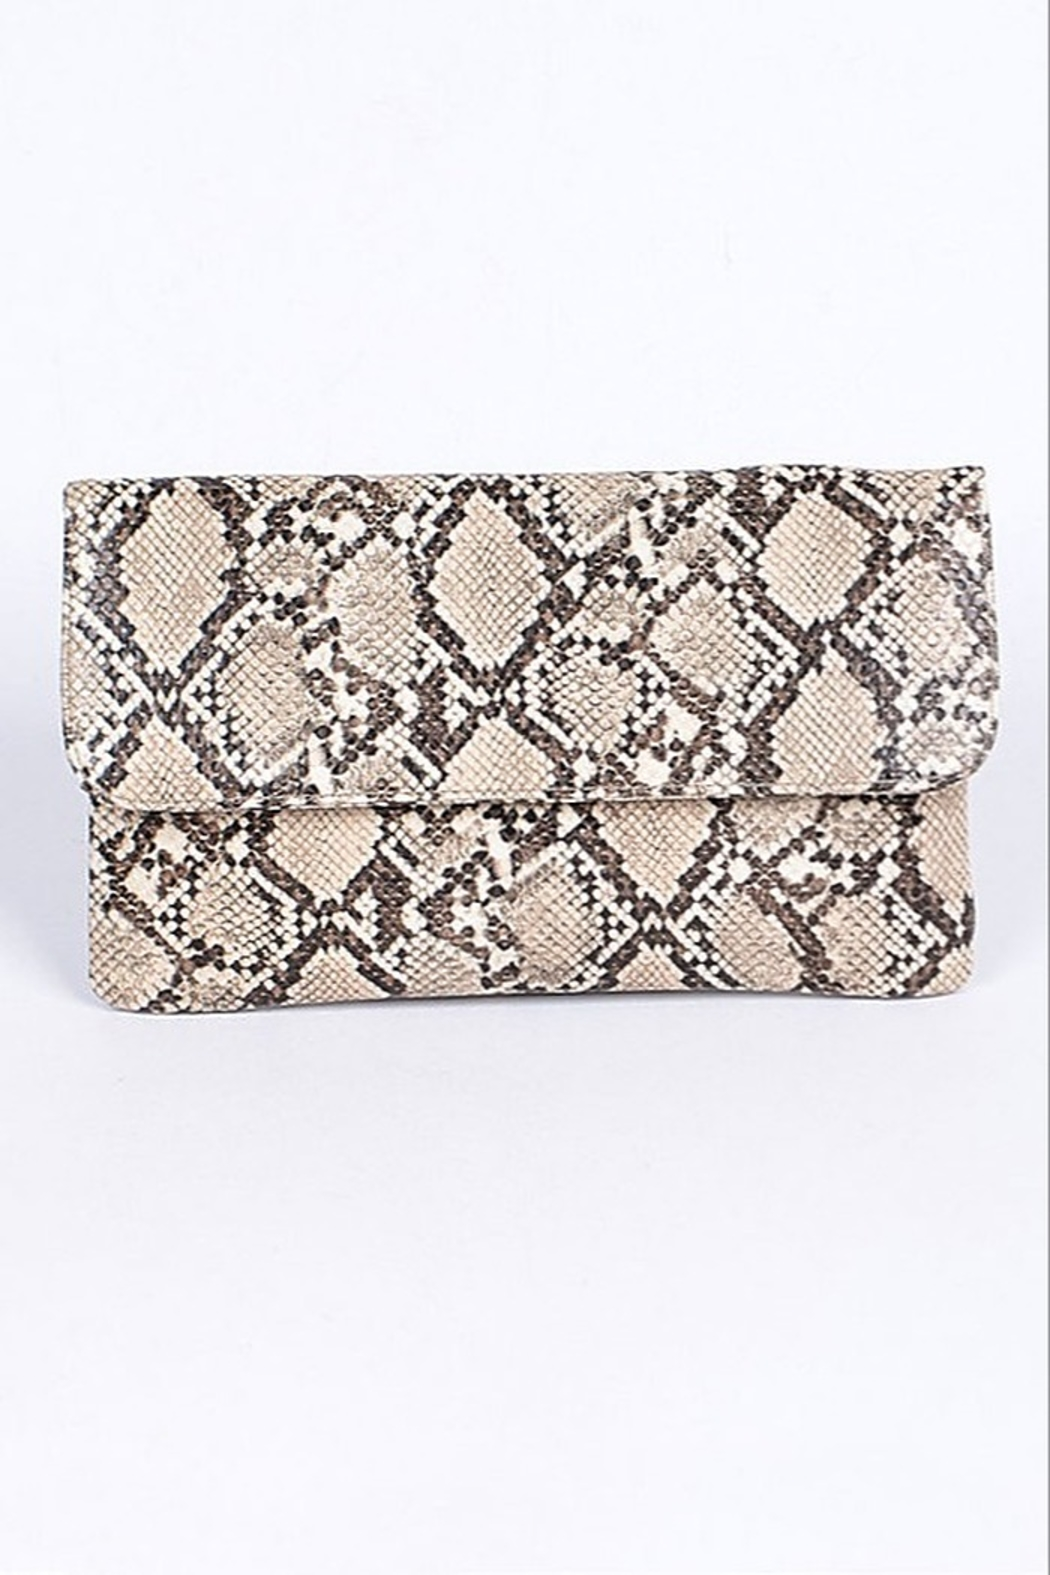 H & D Python Print Clutch - Front Cropped Image